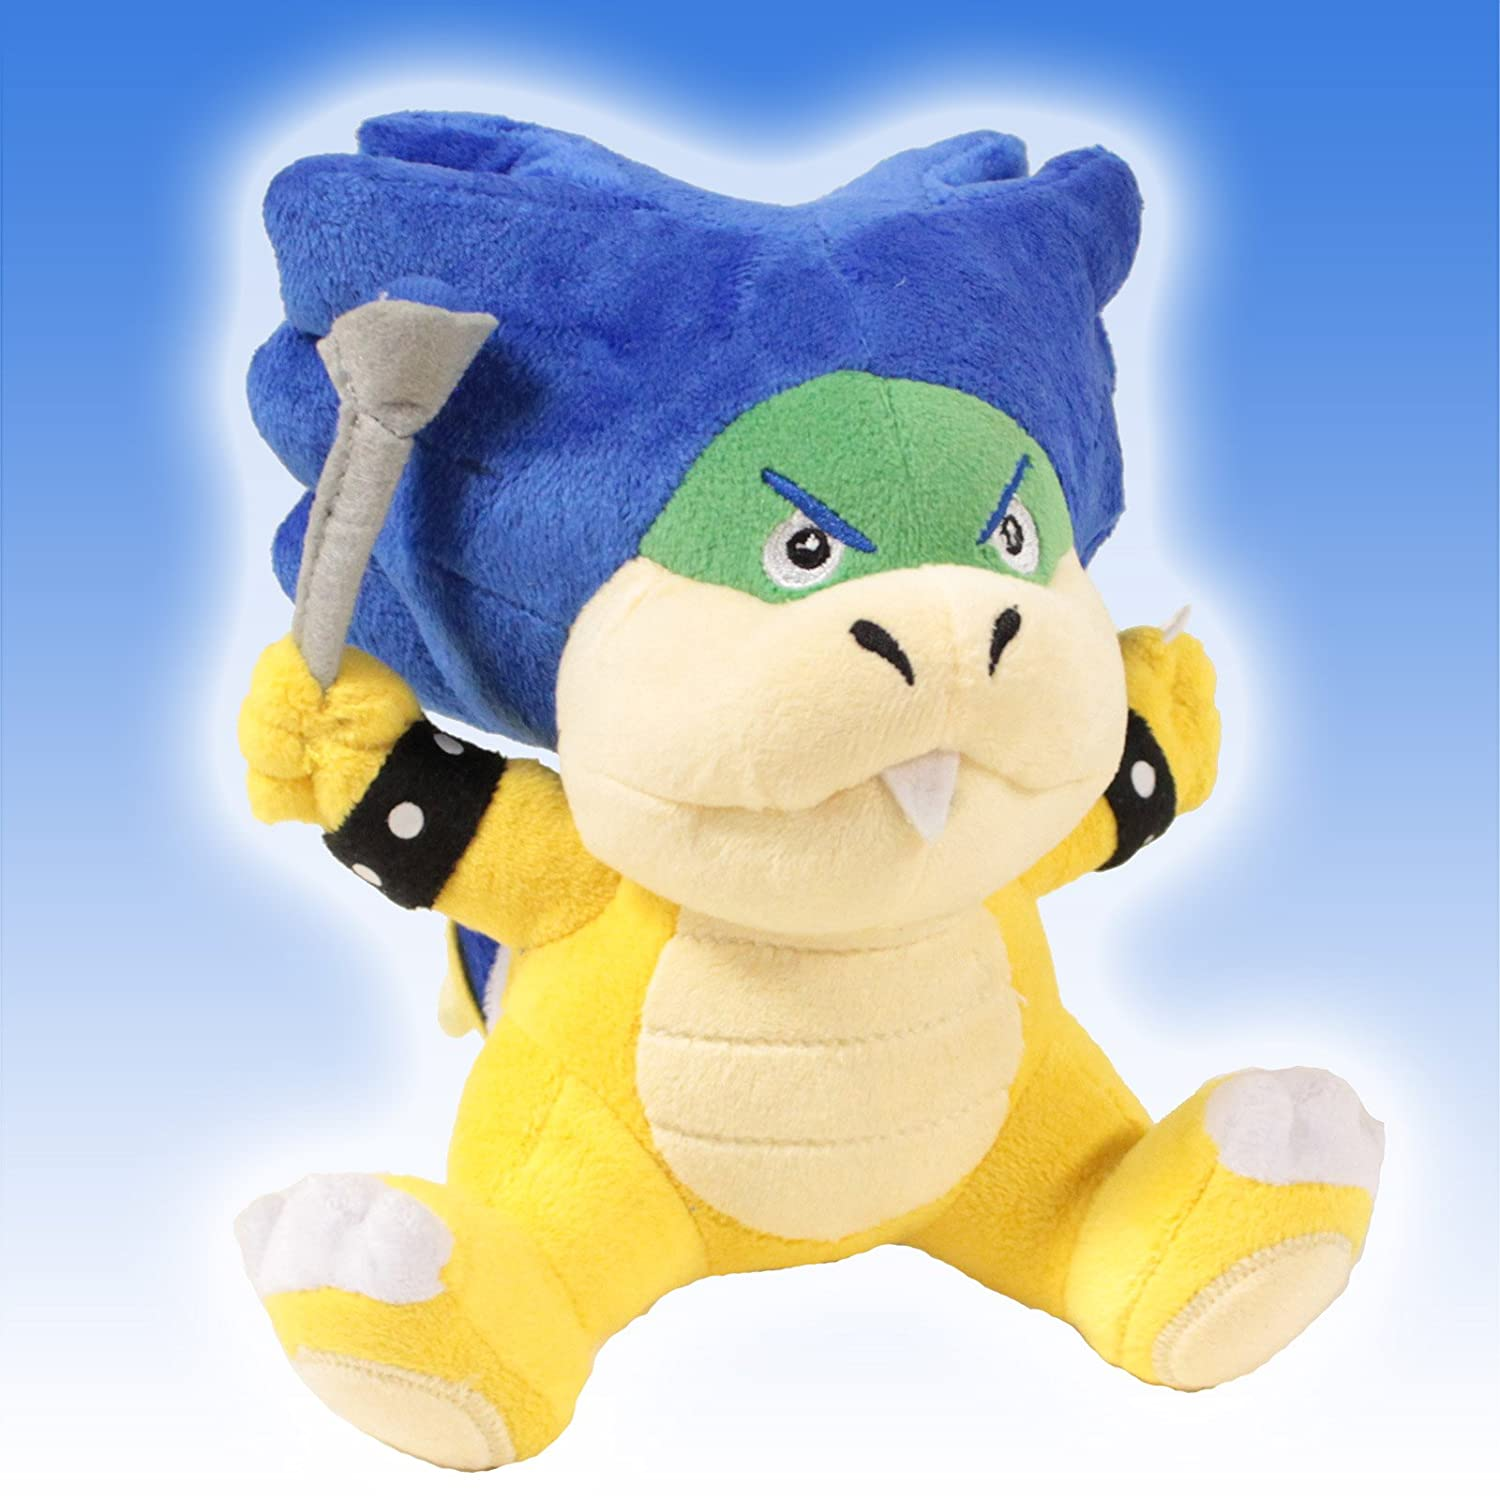 Super Mario Brothers 6 Plush ludwig von Koopa toy Doll by Super Mario Brothers